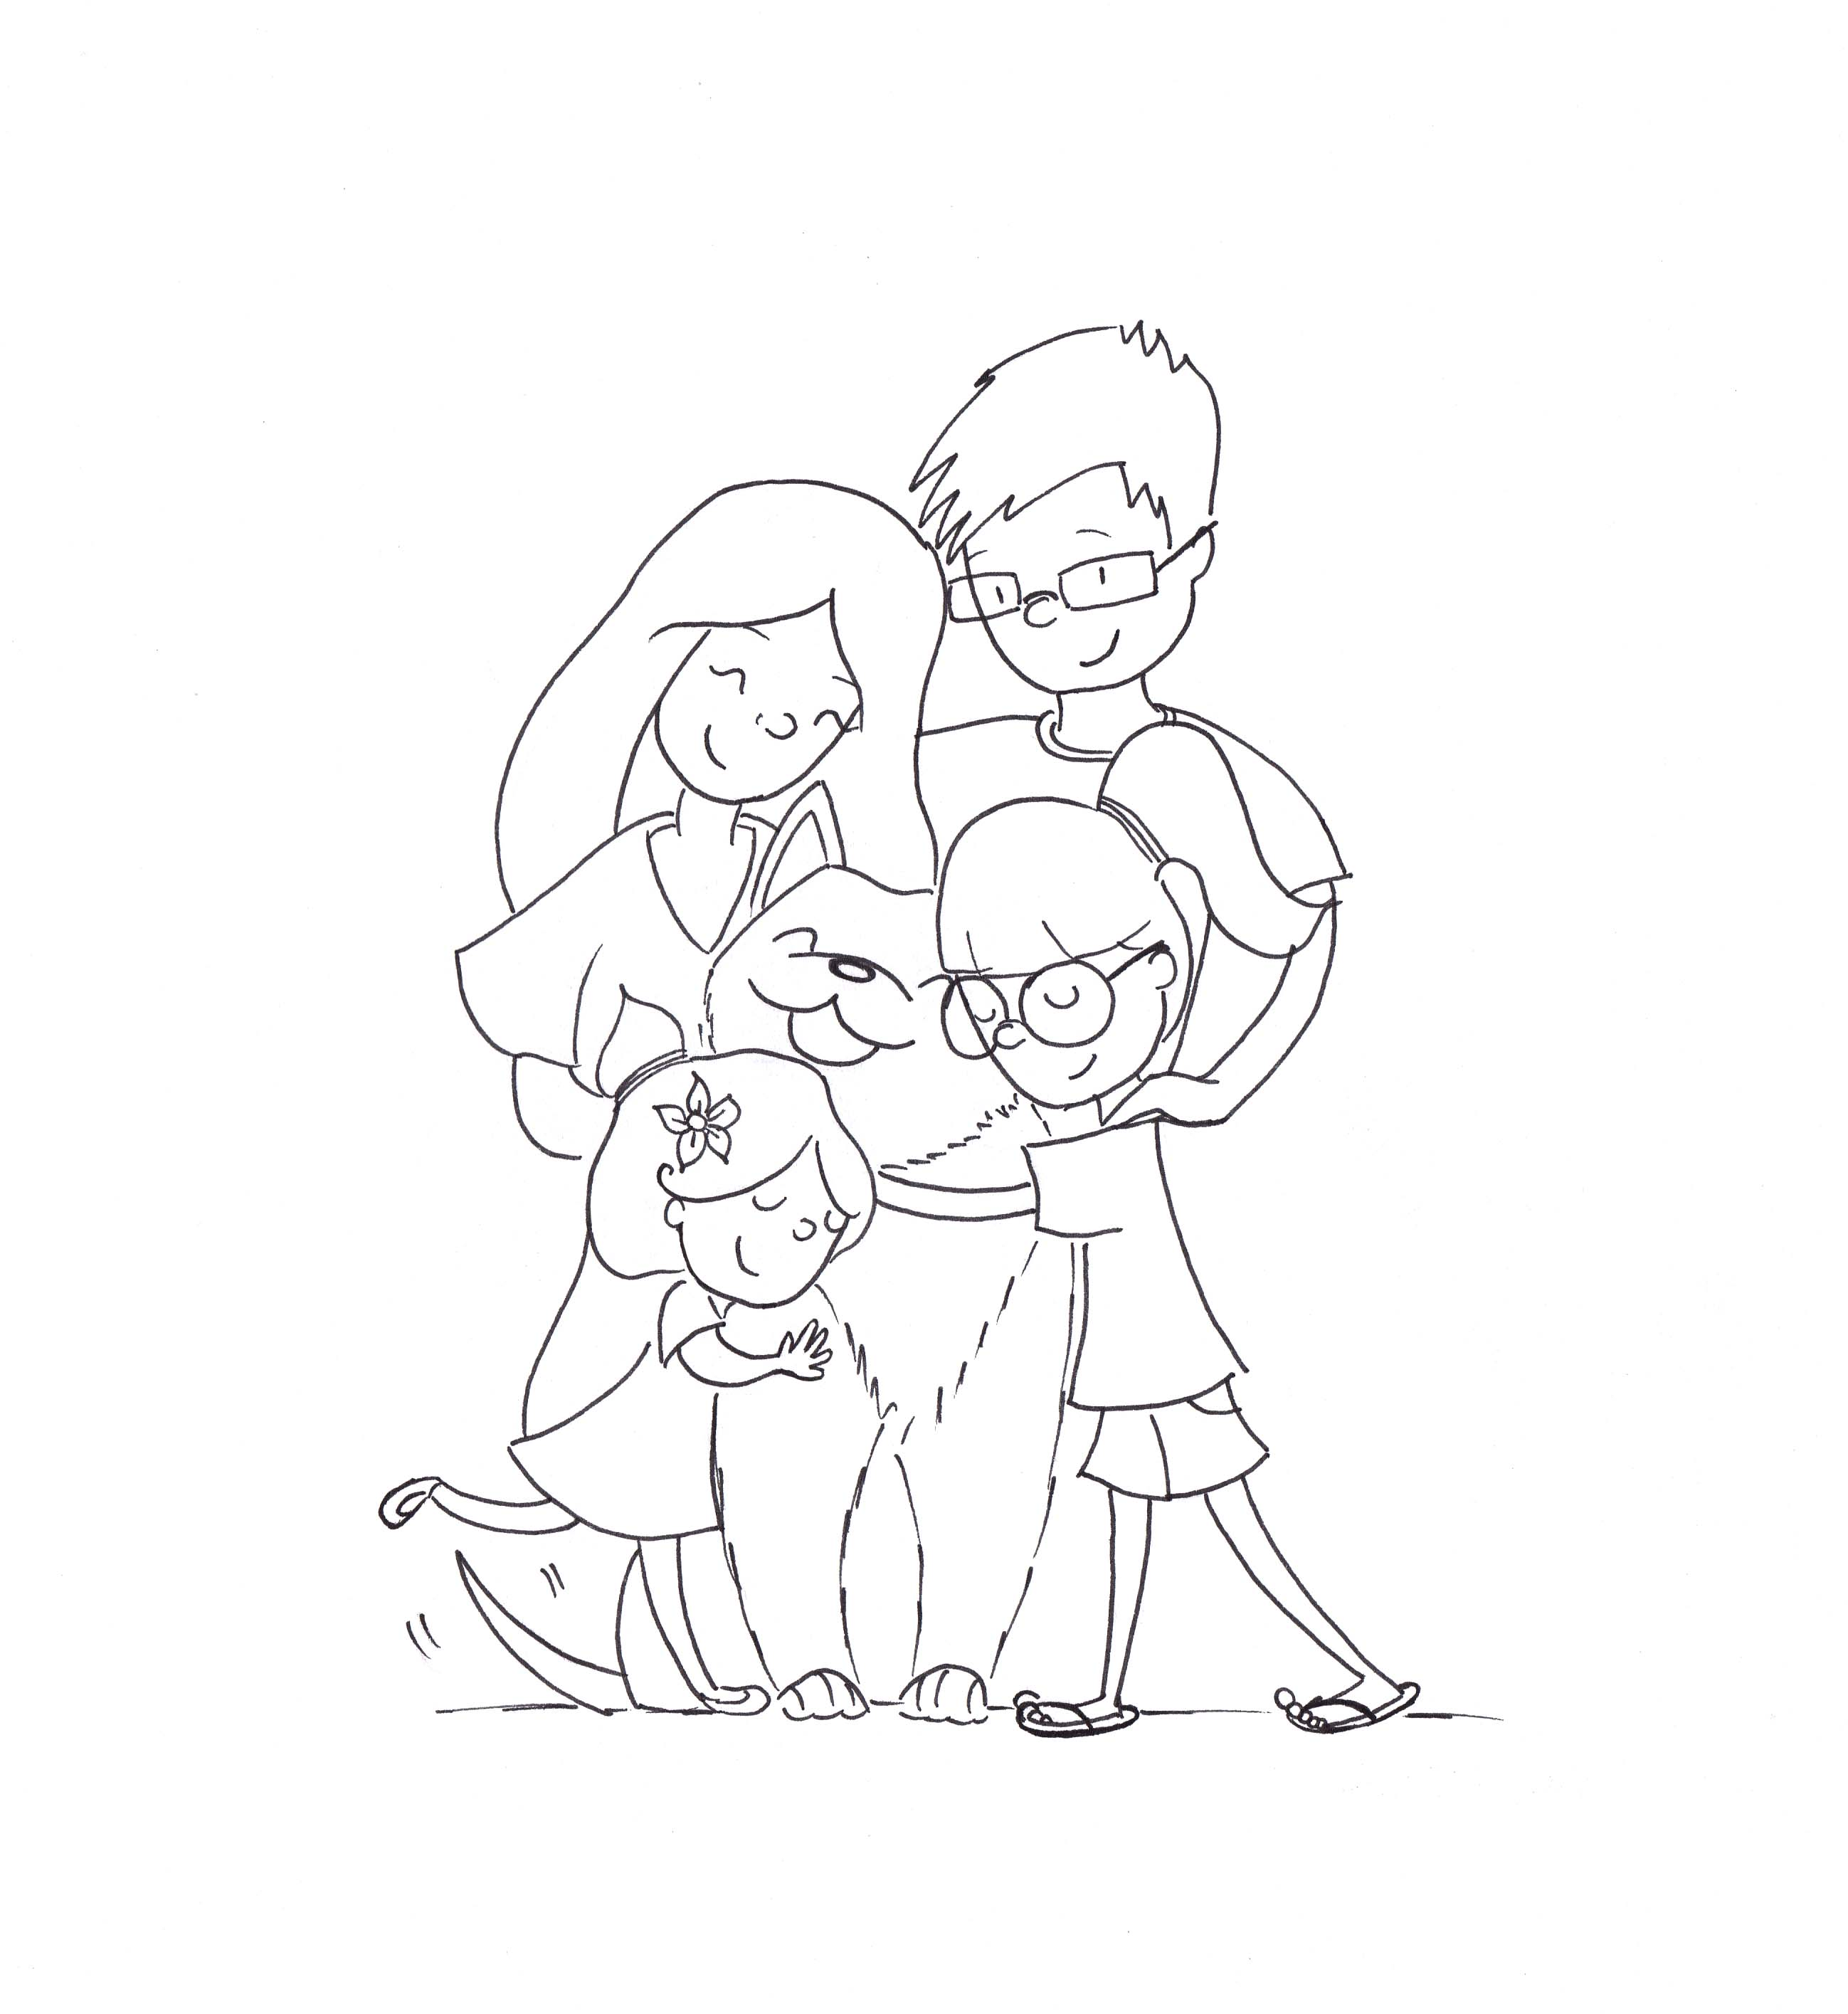 Family hugs inked